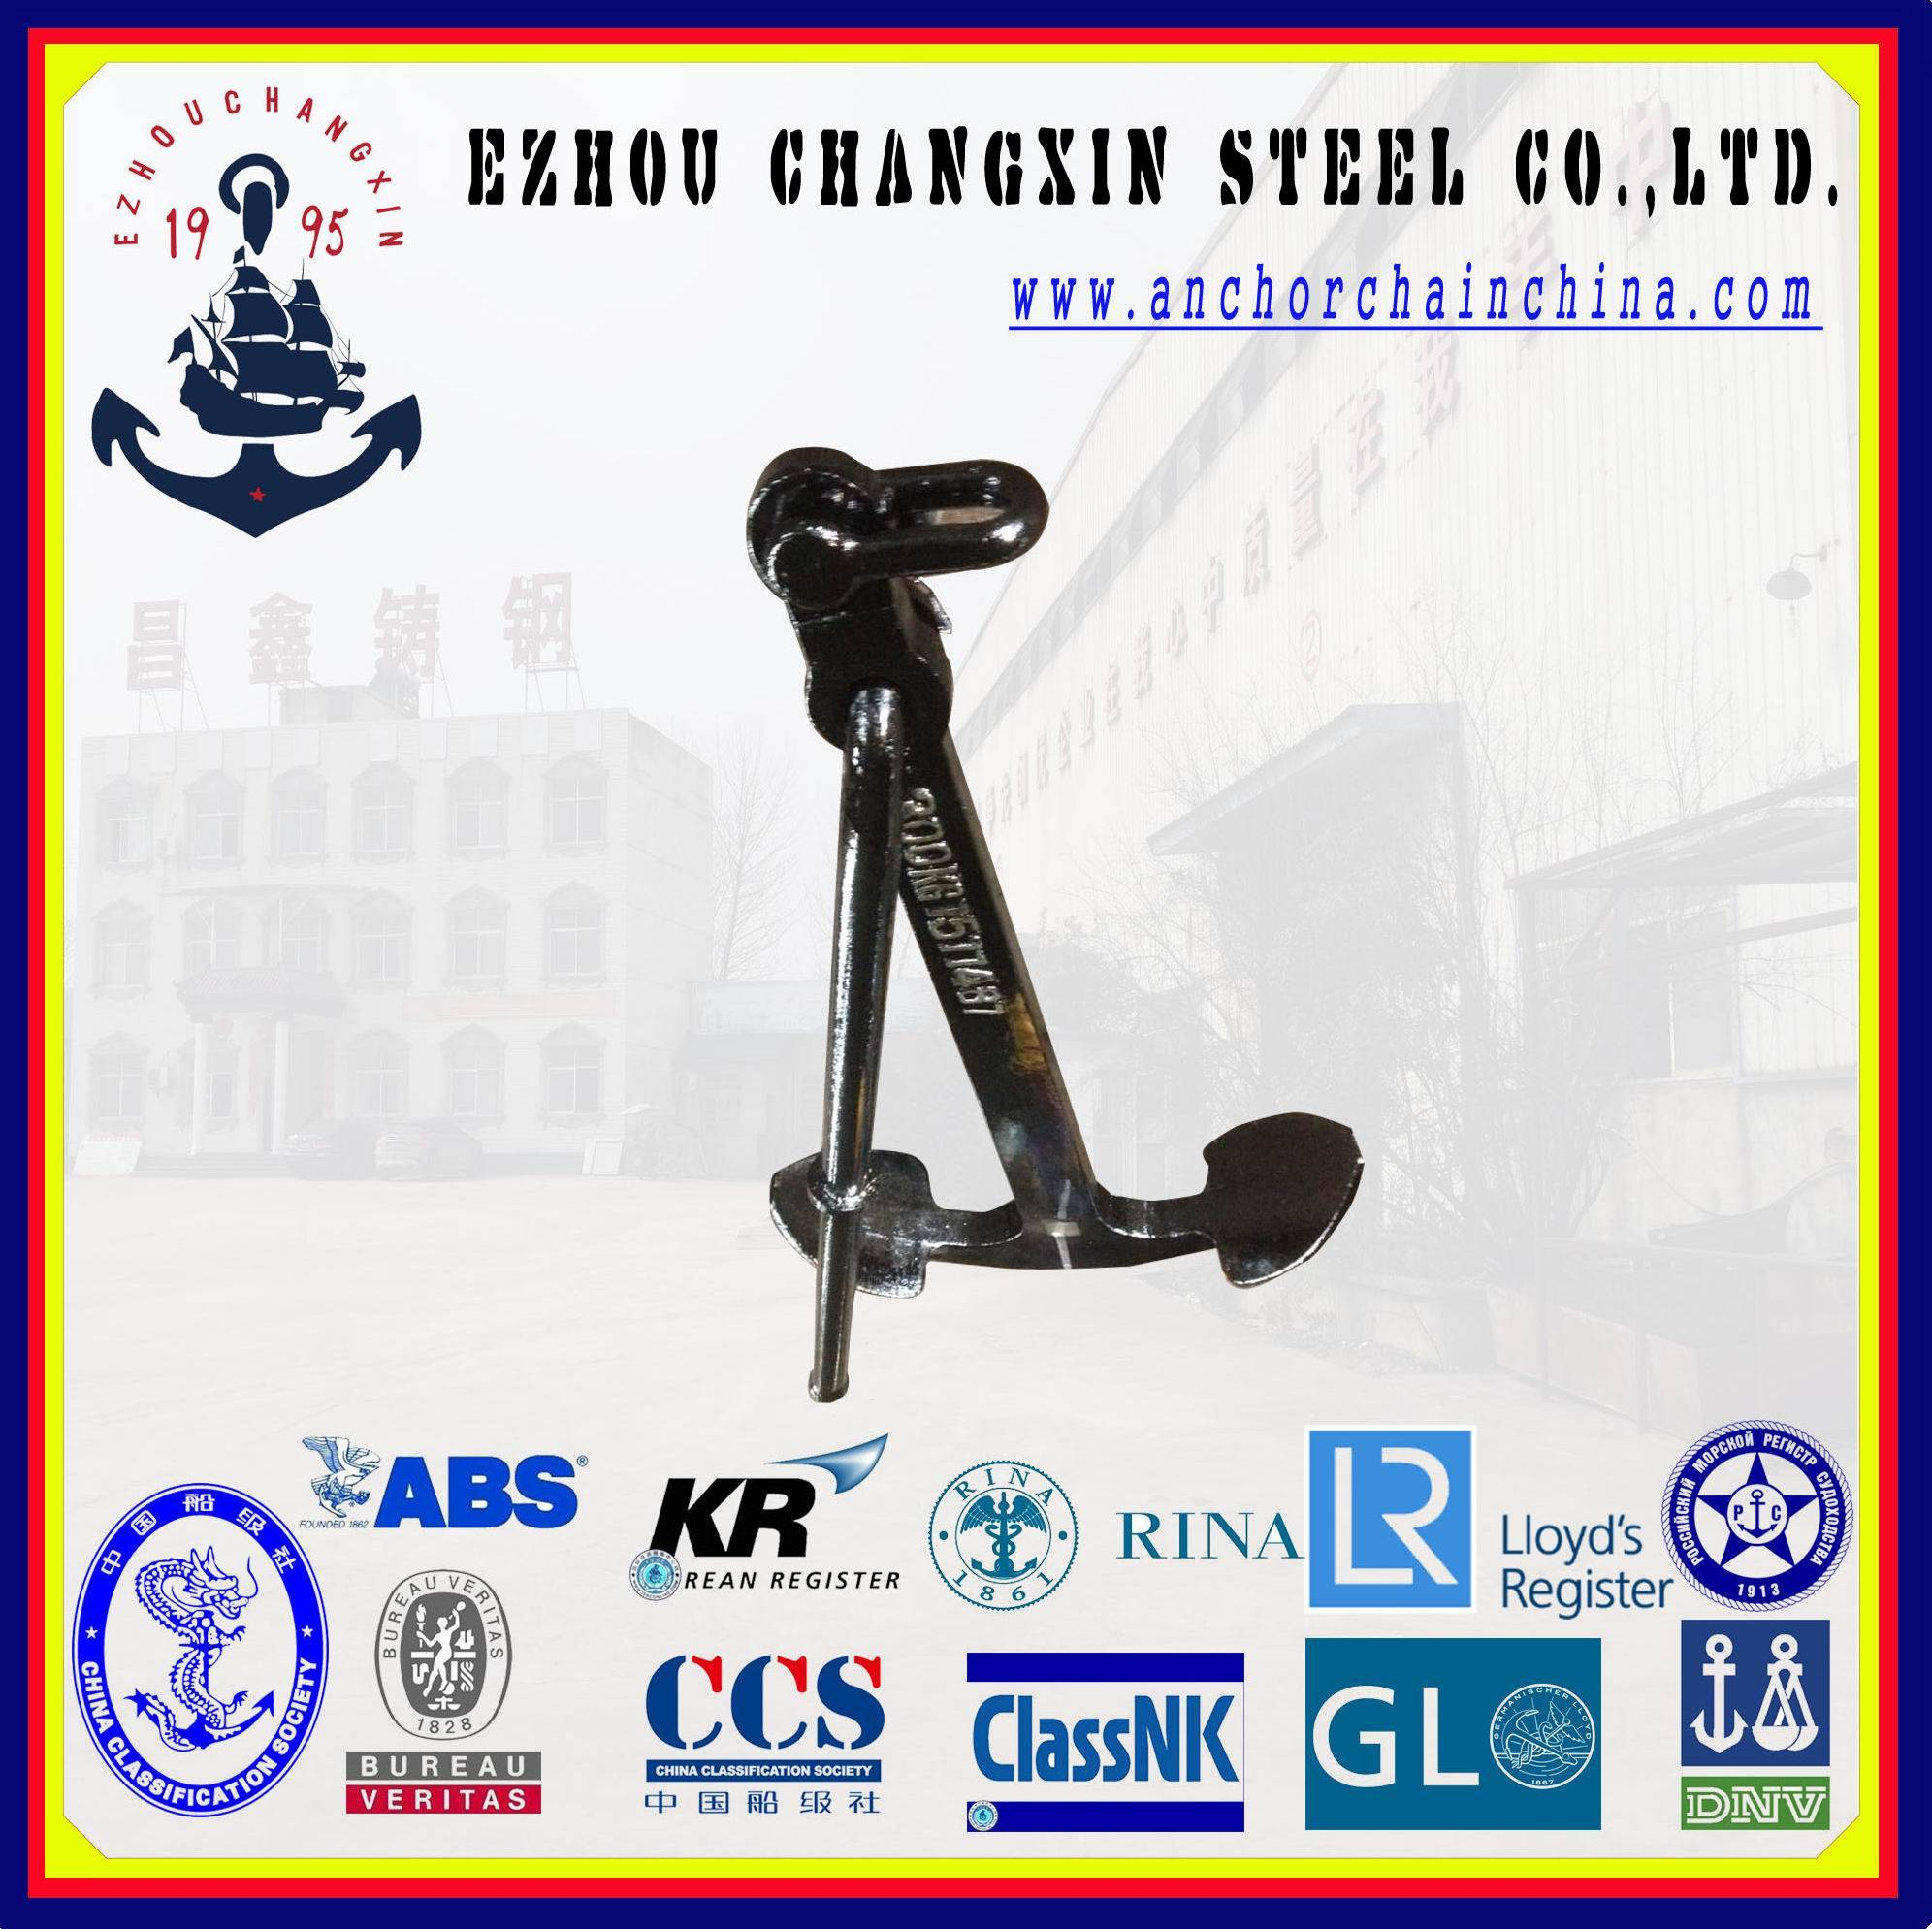 The worldsale ship anchor marine admiralty anchor  for sale in china